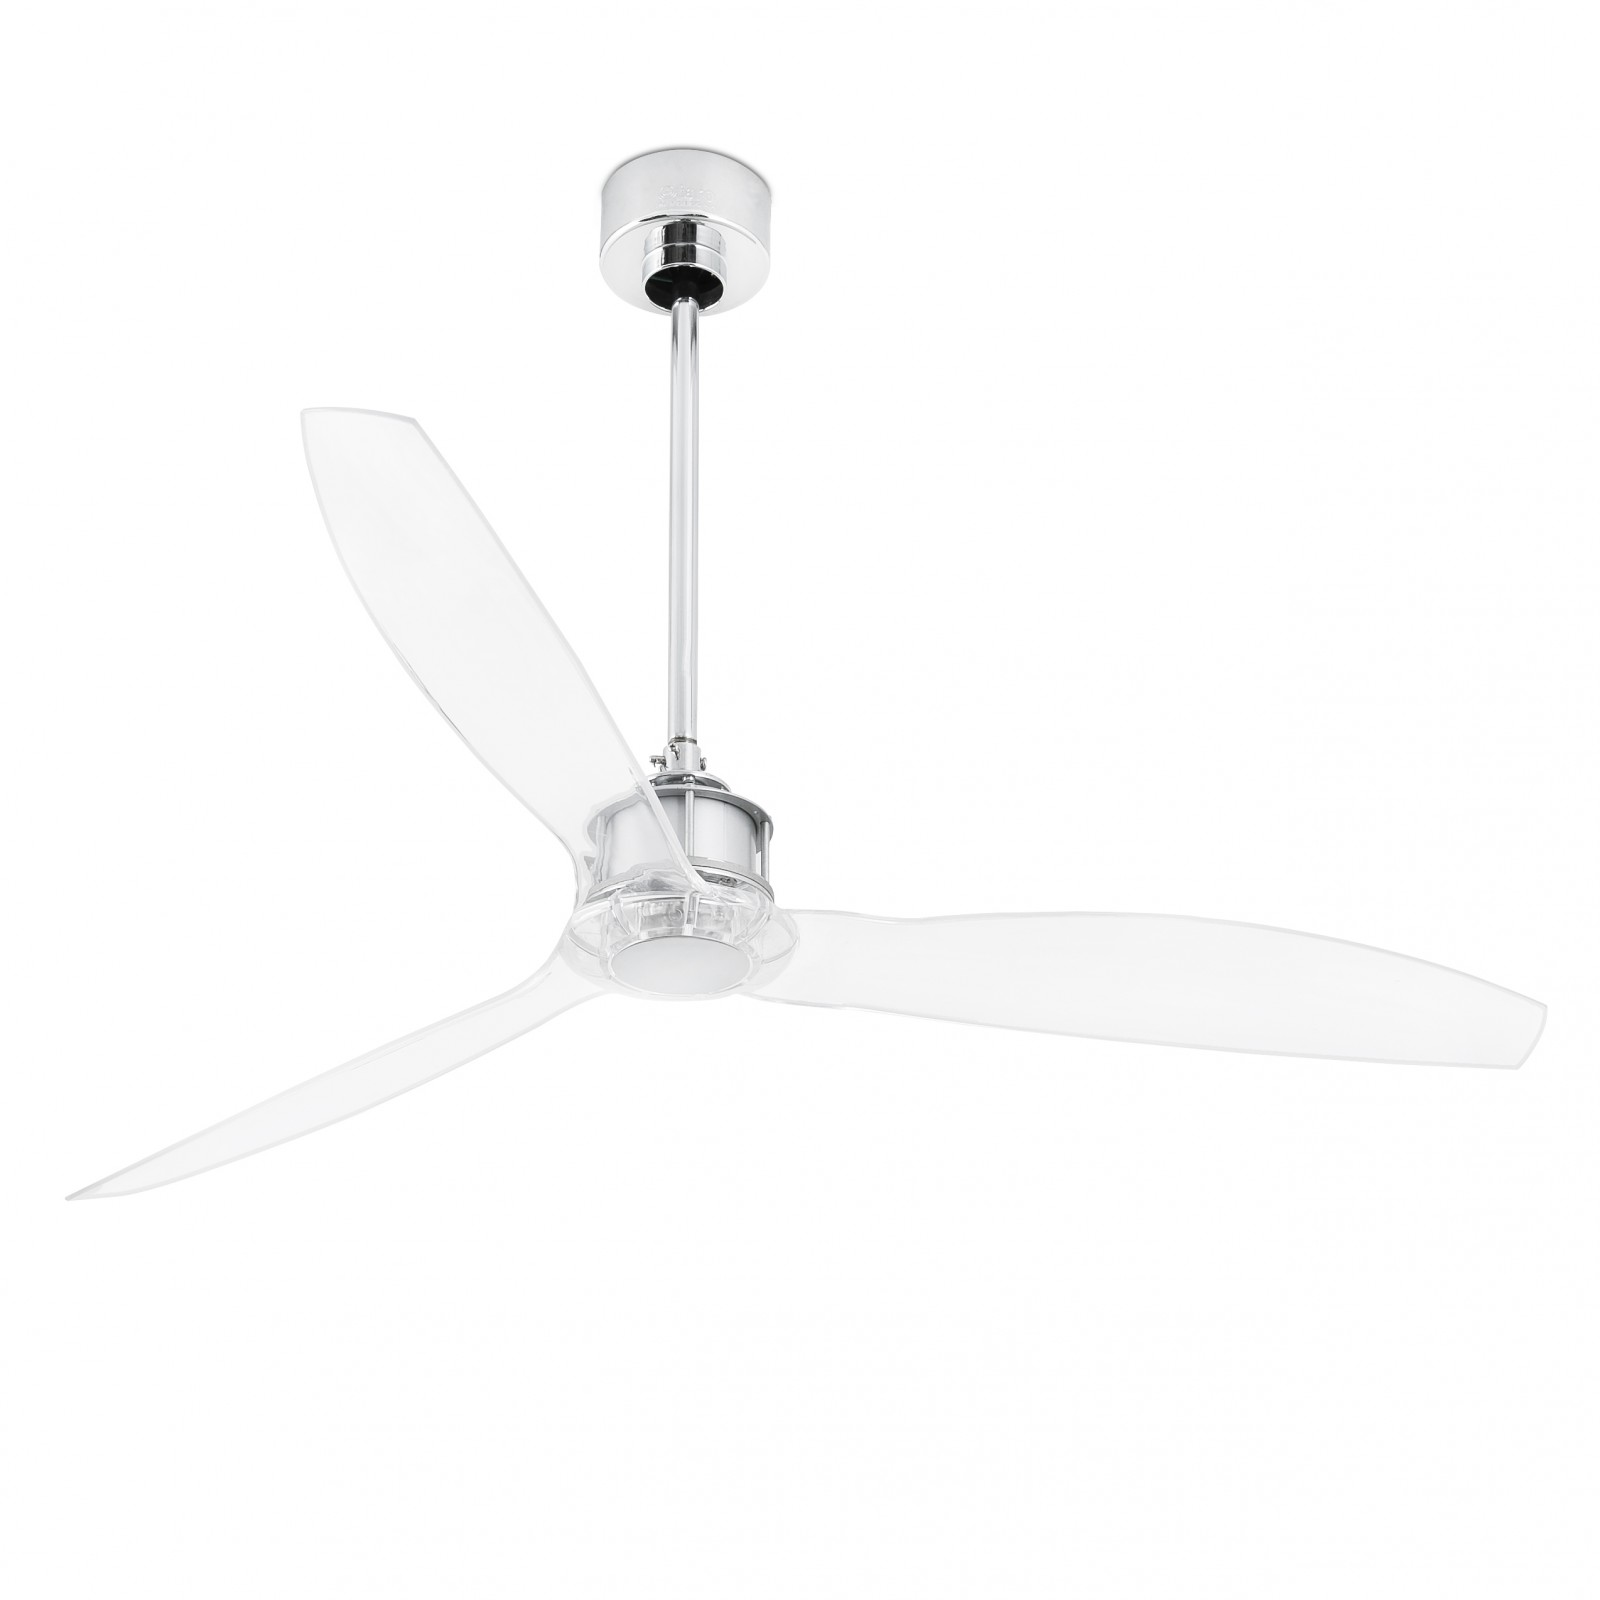 "Faro energy saving ceiling fan Just Fan chrome 128 cm 50 5"" with"